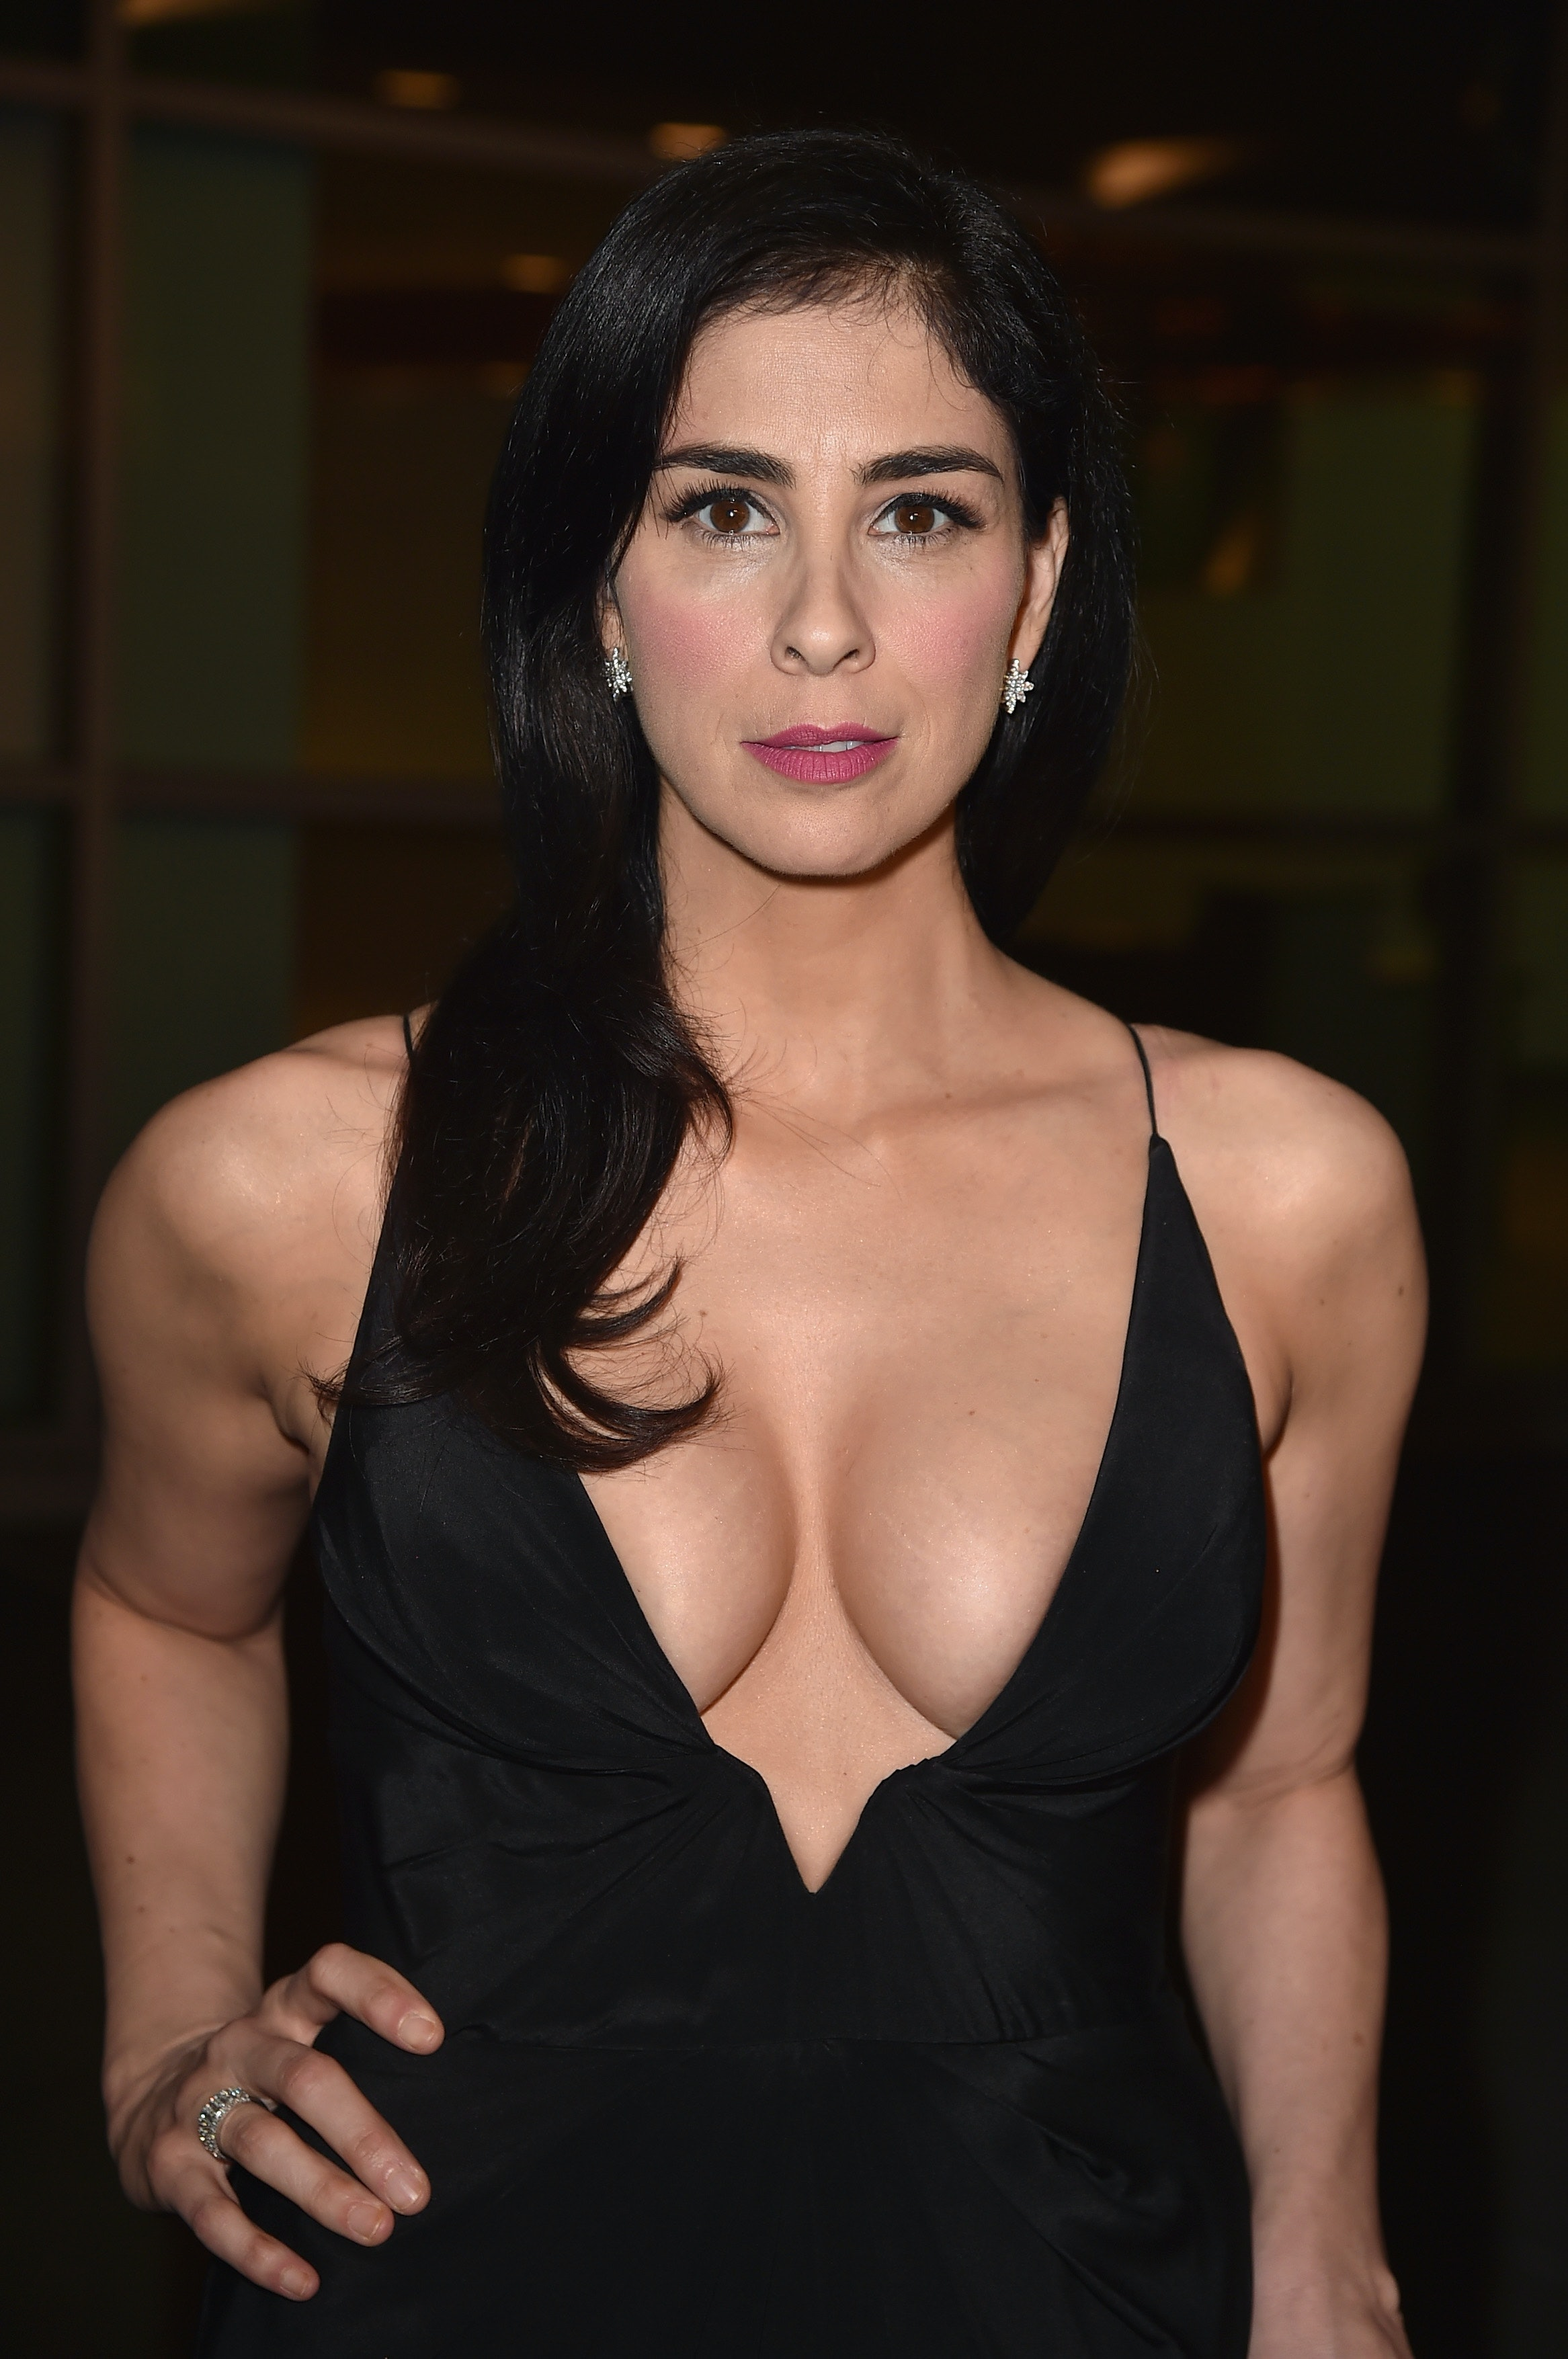 Sarah silverman hot pictures, female midgets in porn pictures